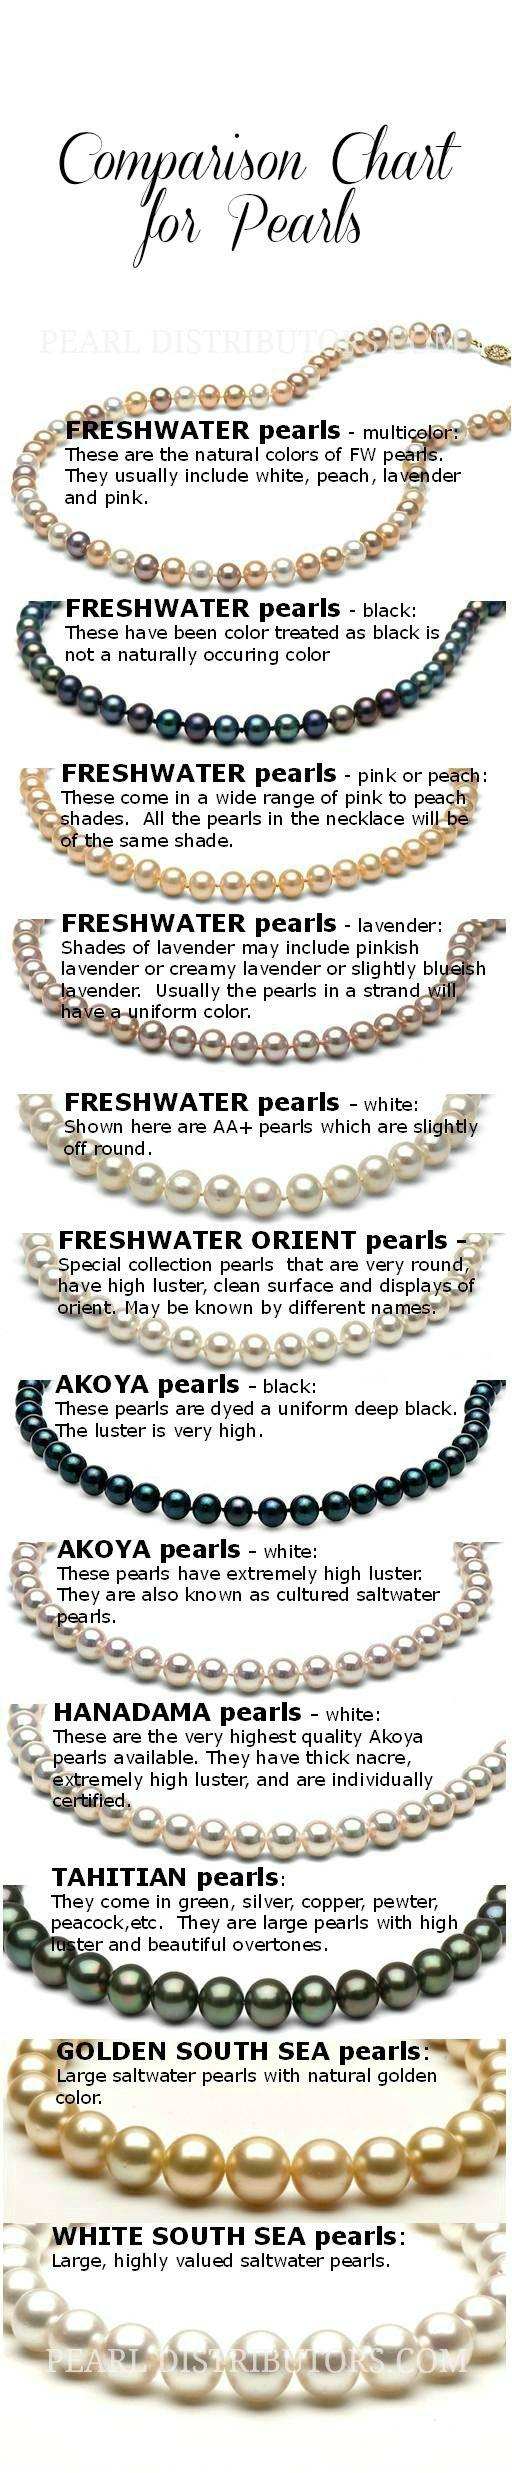 Pearls at a Glance! Compare pearl types with this easy comparison chart. #compare pearls #pearls LBV